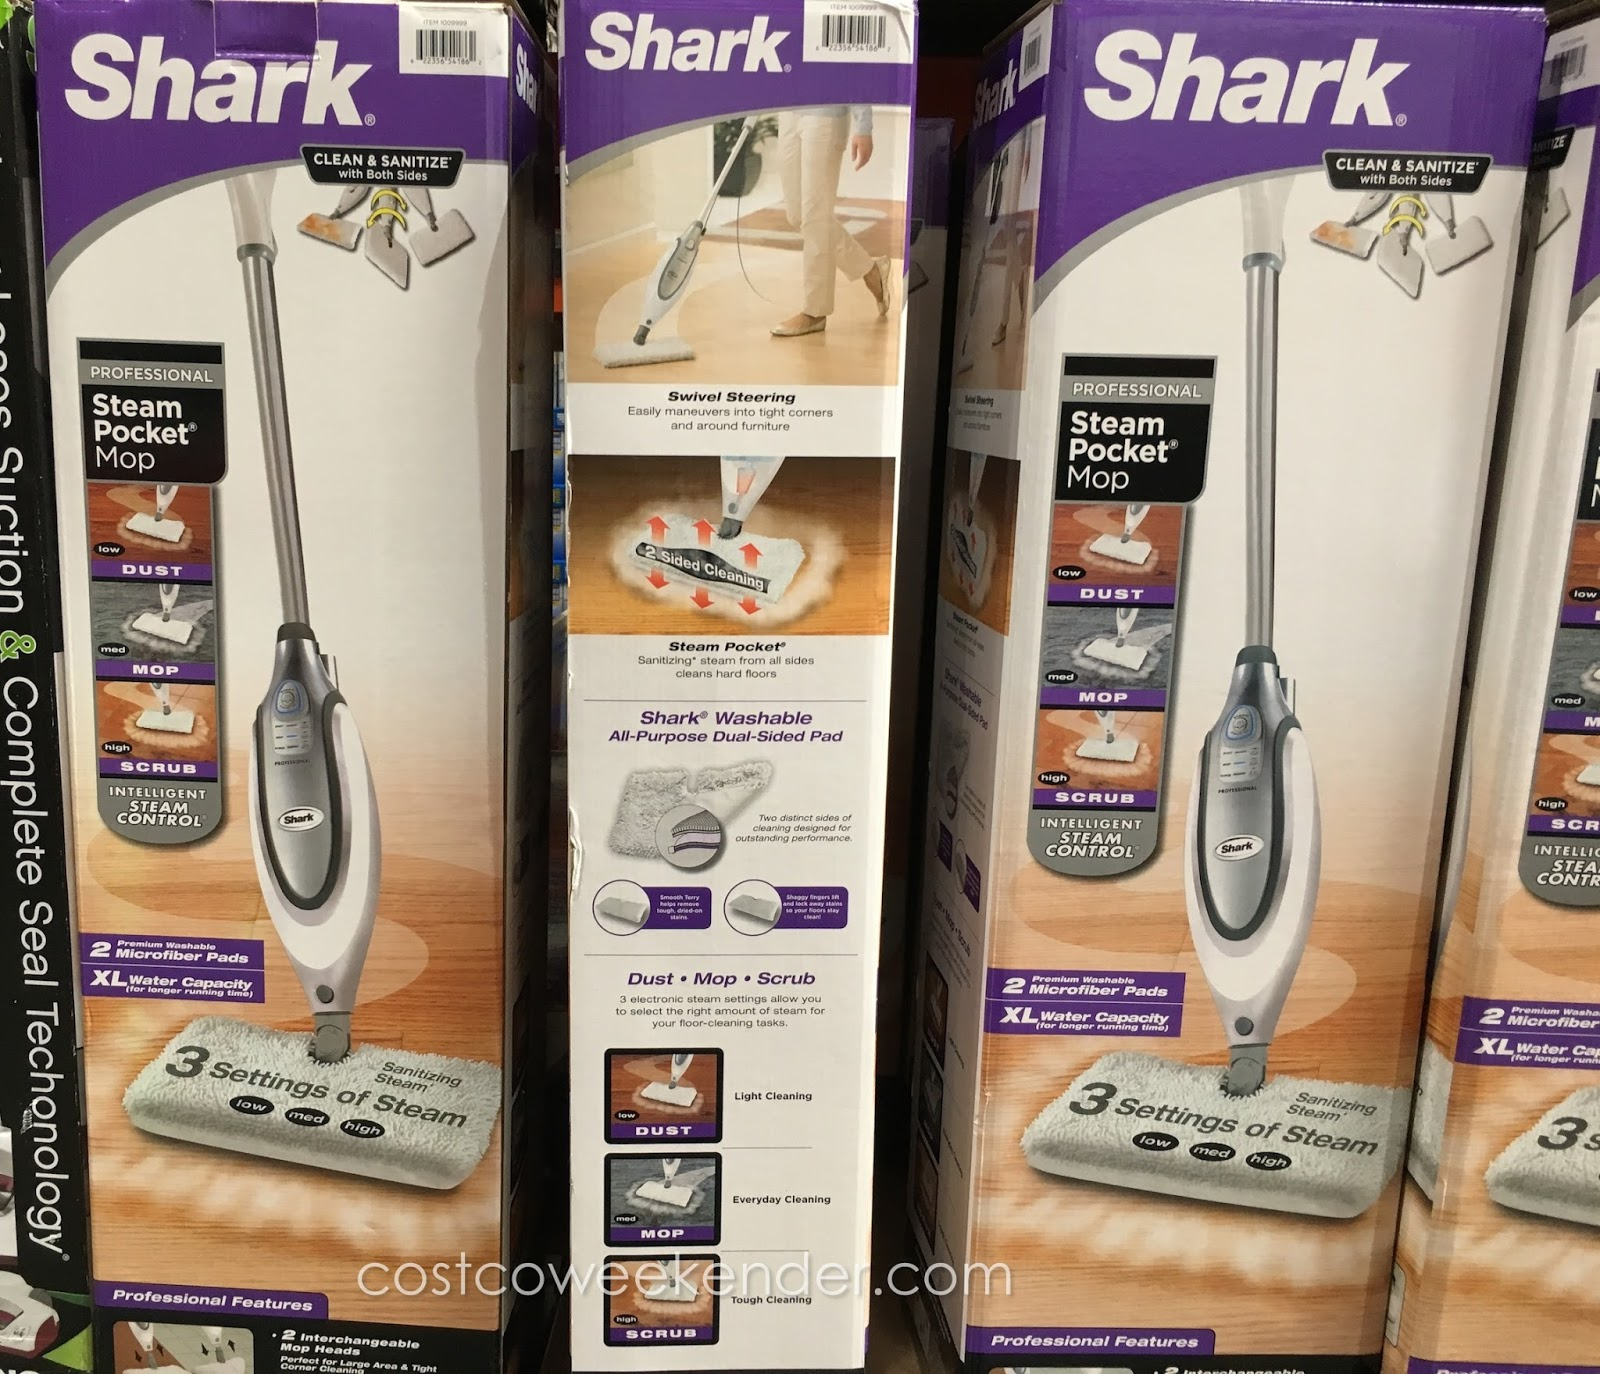 Shark Professional Steam Pocket Mop Costco Weekender